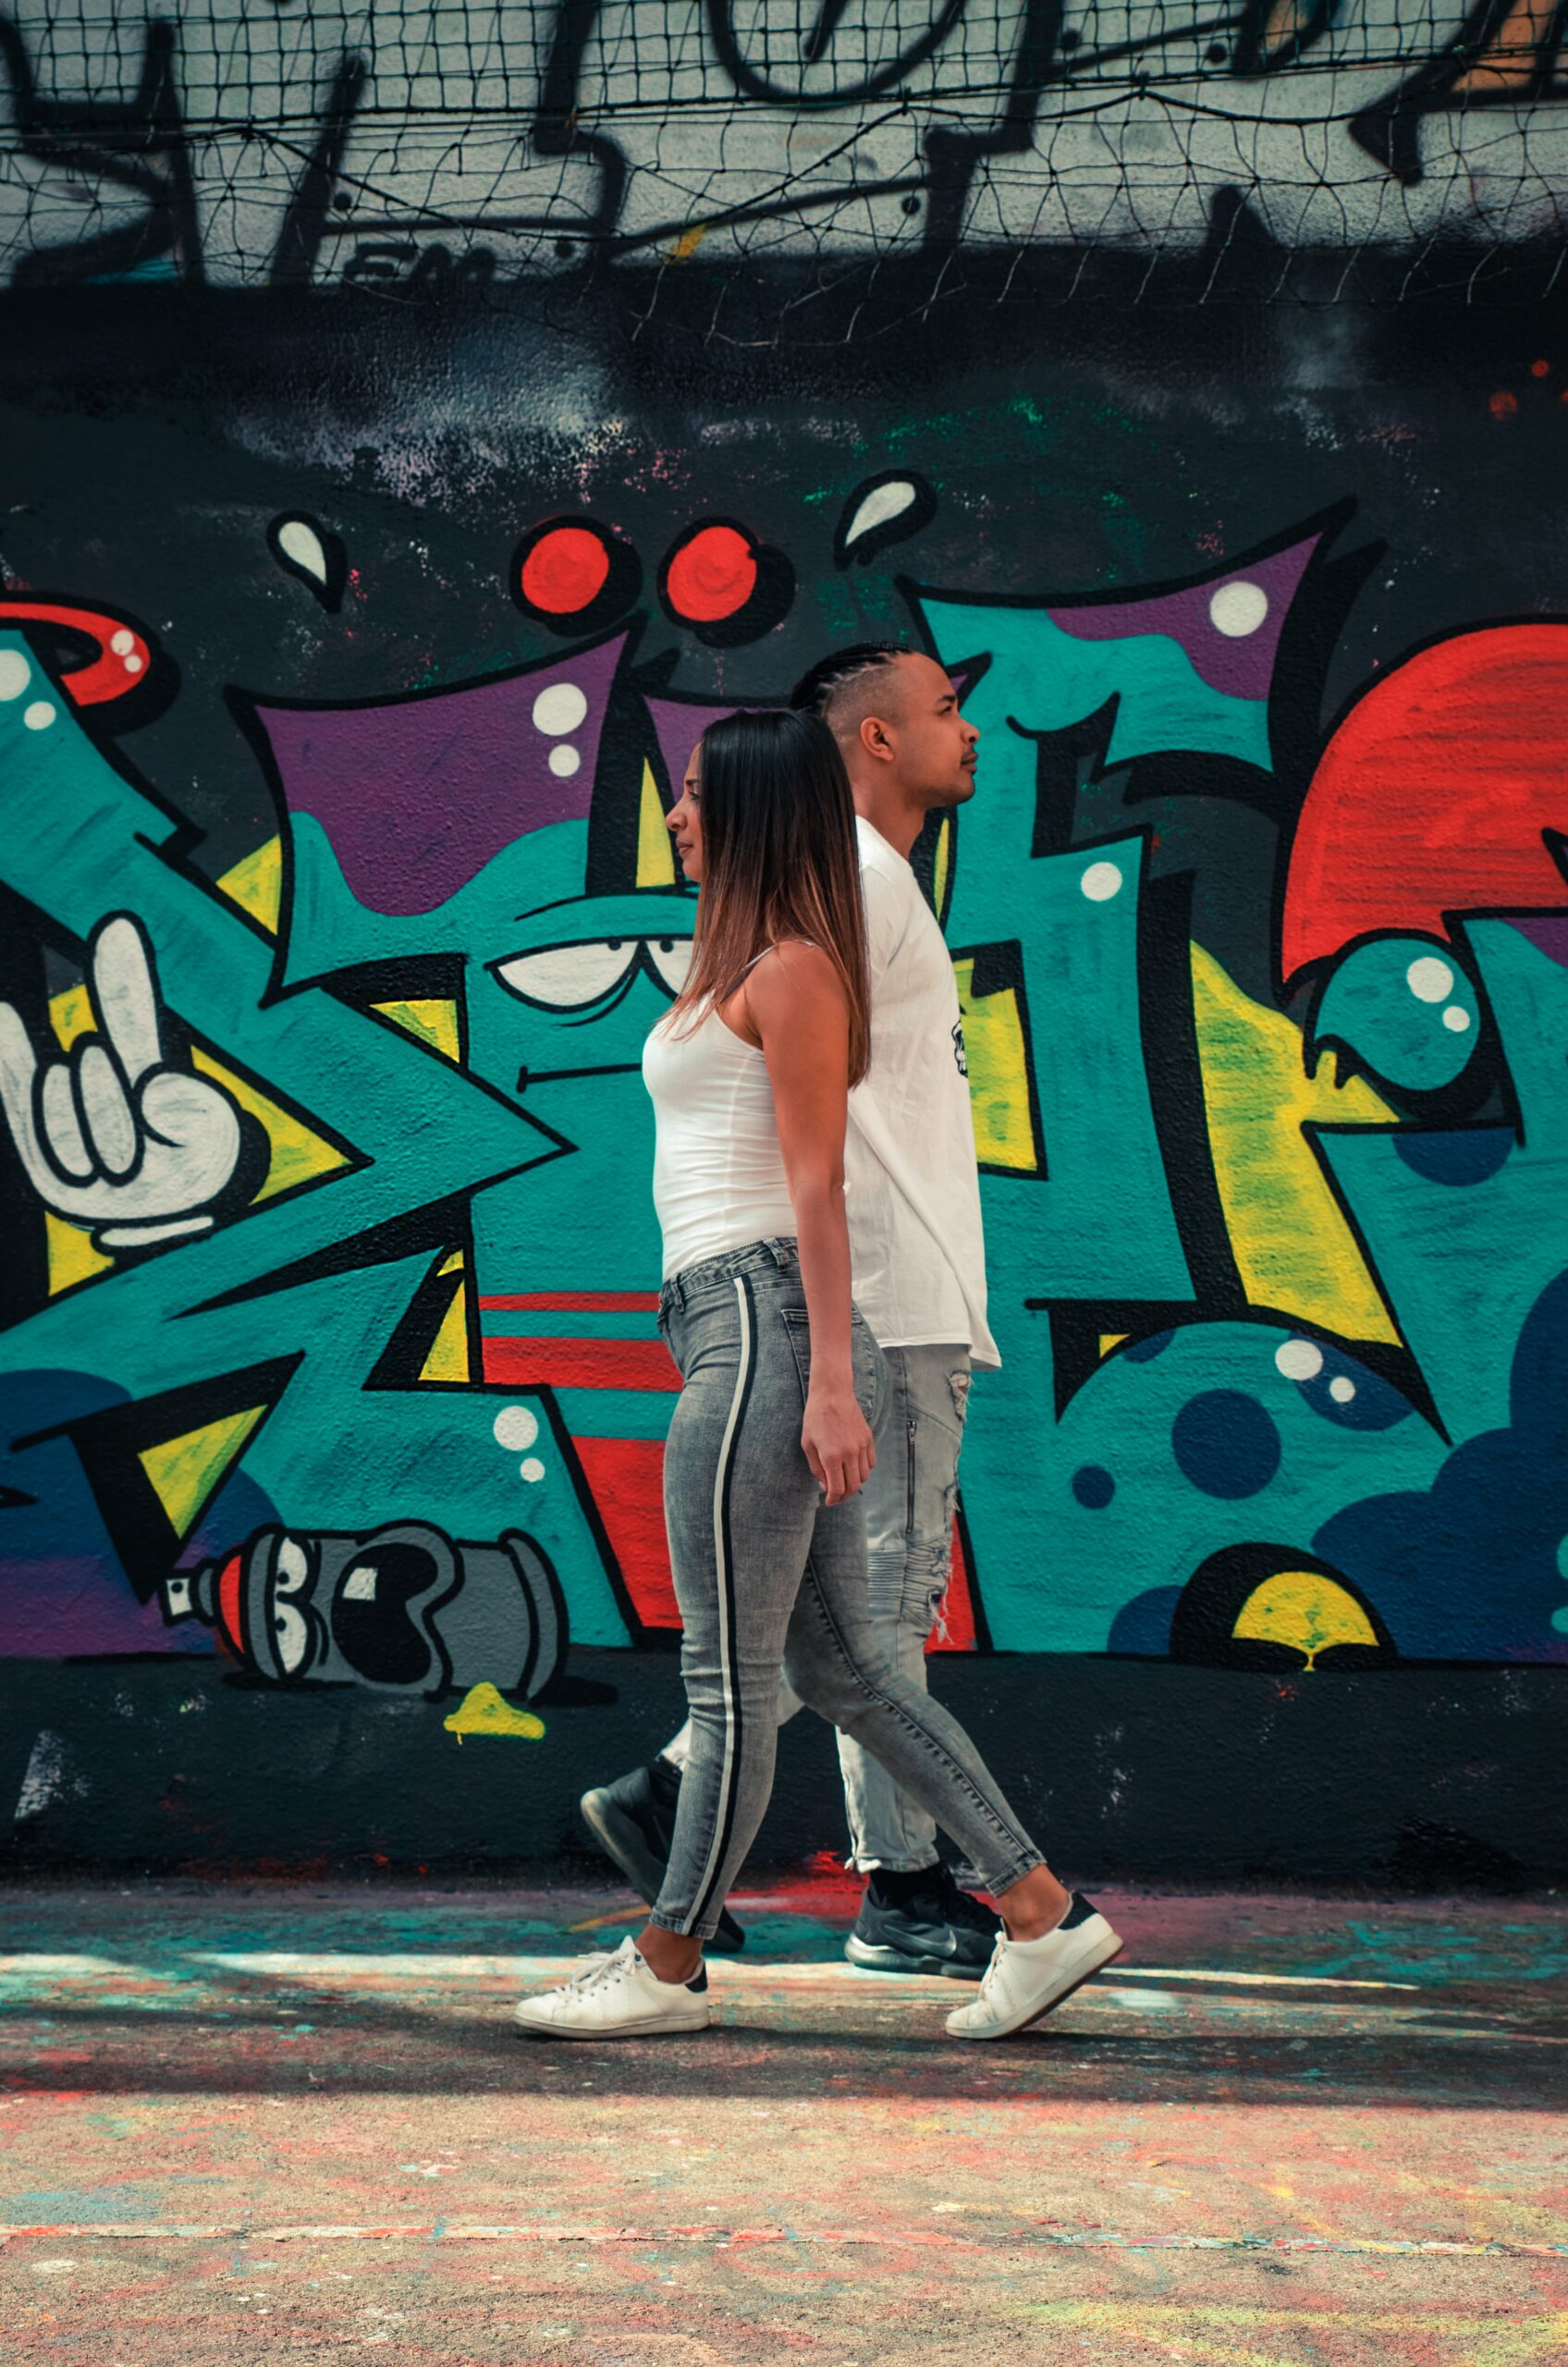 A woman and a man walking past each other in front of wall covered in graffiti